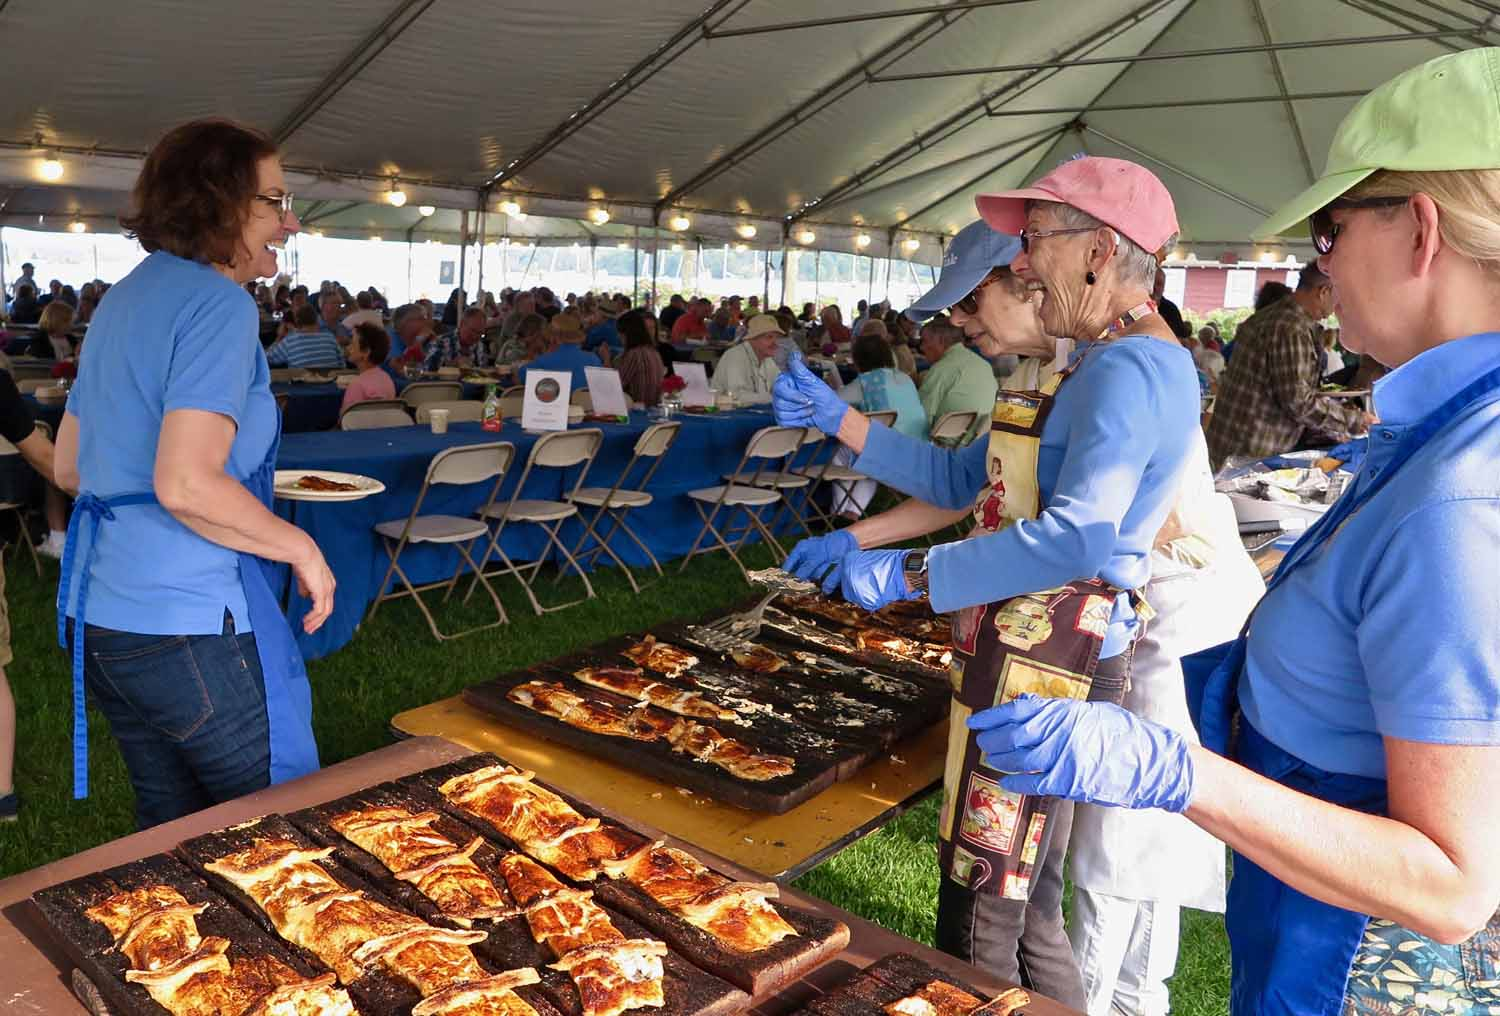 he 61st Essex Annual Shad Bake relies on dozens of volunteers as servers, setup crews and cooks.